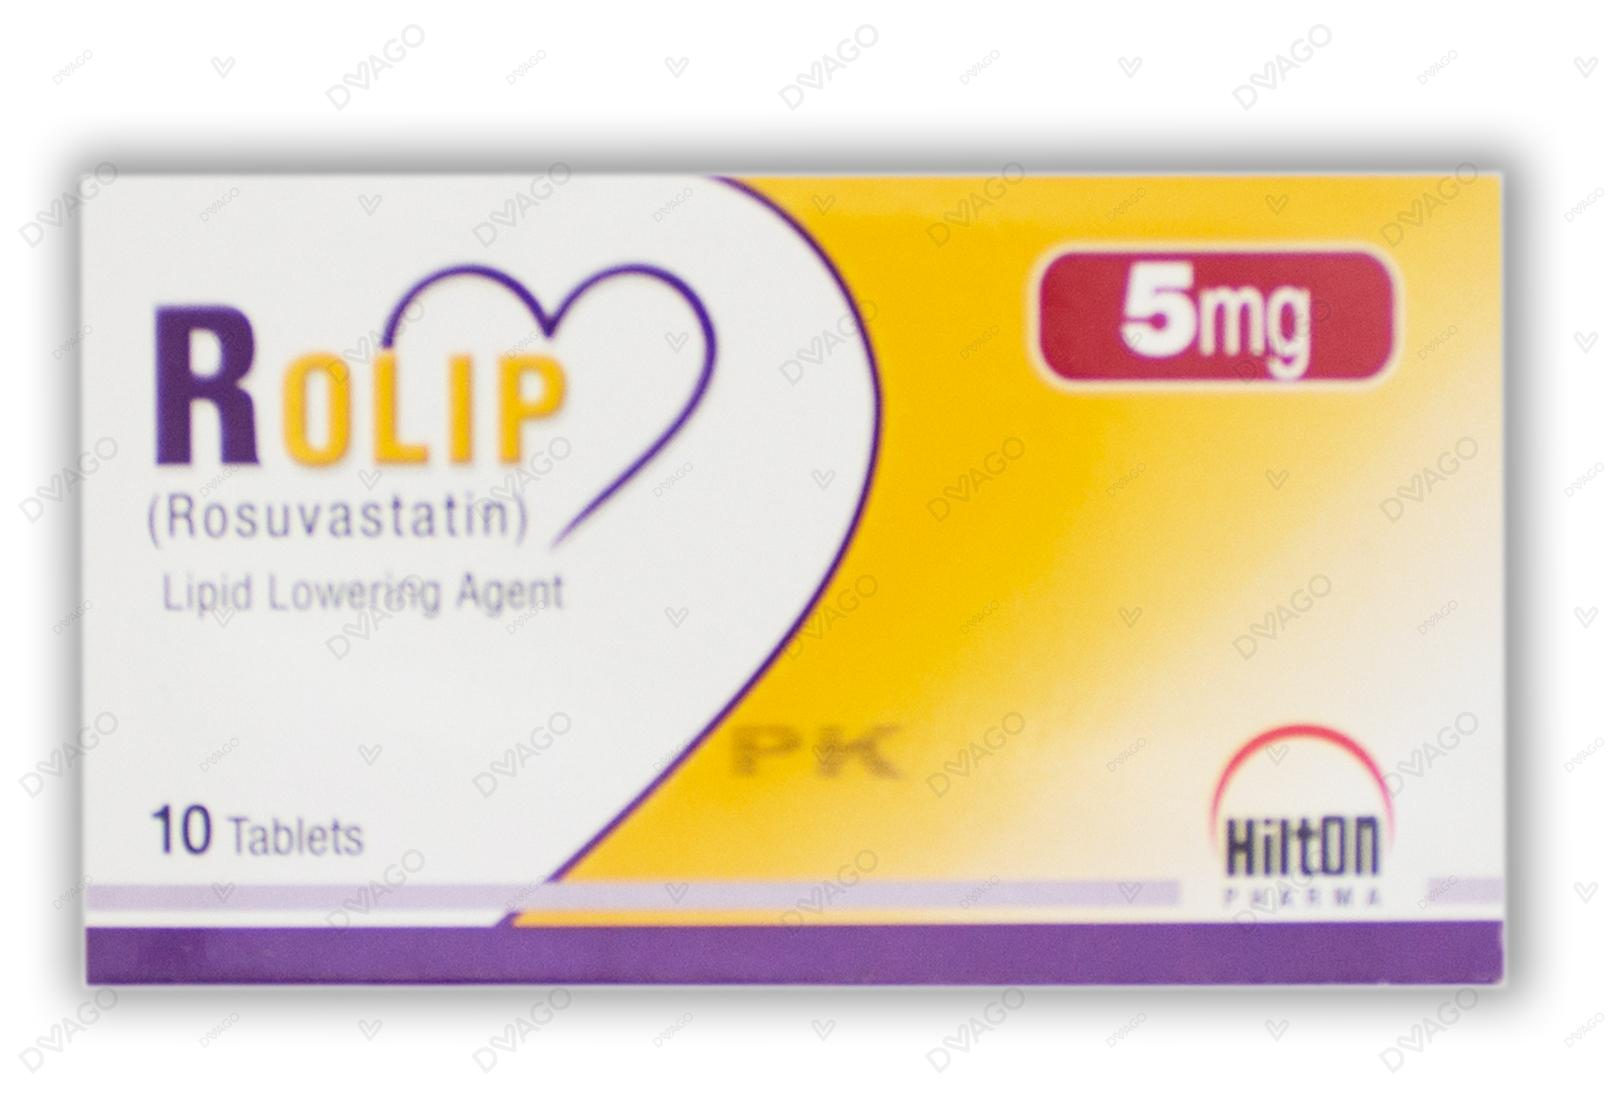 Rolip Tablets 5mg 10's